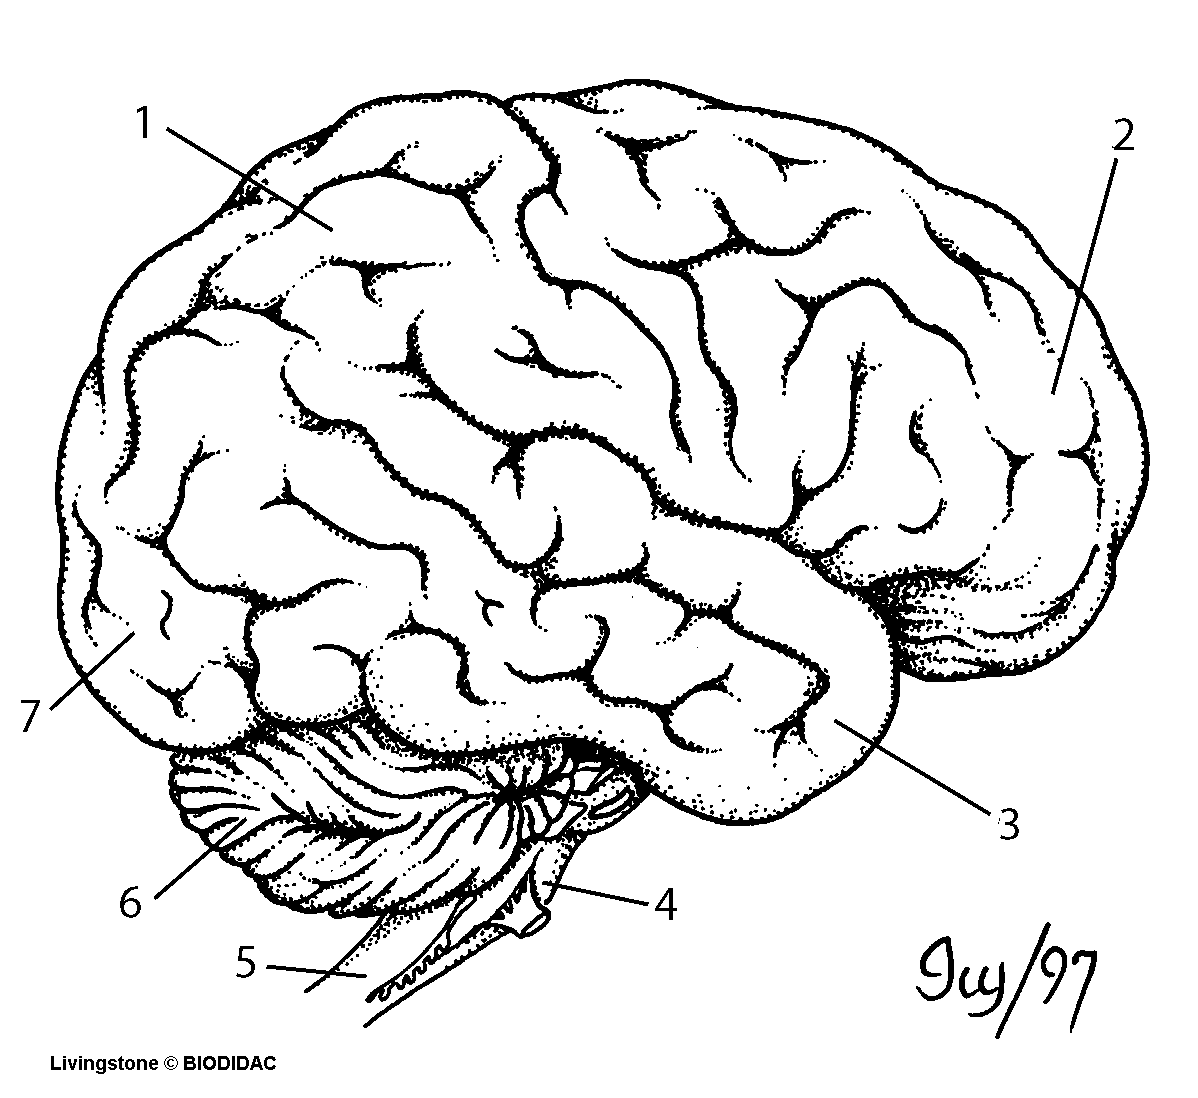 Drawn brains unlabeled lateral System The Nervous